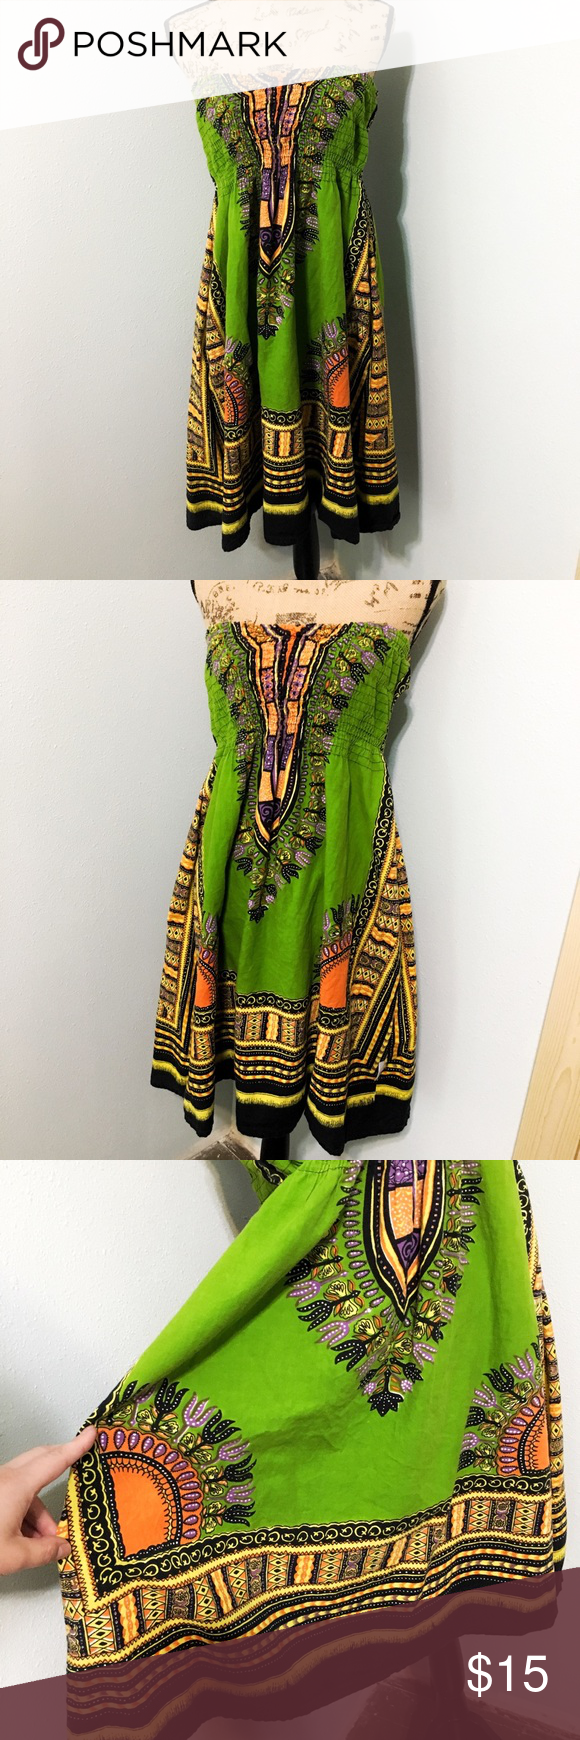 Colorful summer dress Beautiful African style summer dress Made in india  Missing tags but is very stretchy and could fit my 200 lb pregnant body! Does not include halter strap Advance Apparels Dresses Strapless #afrikanischerstil